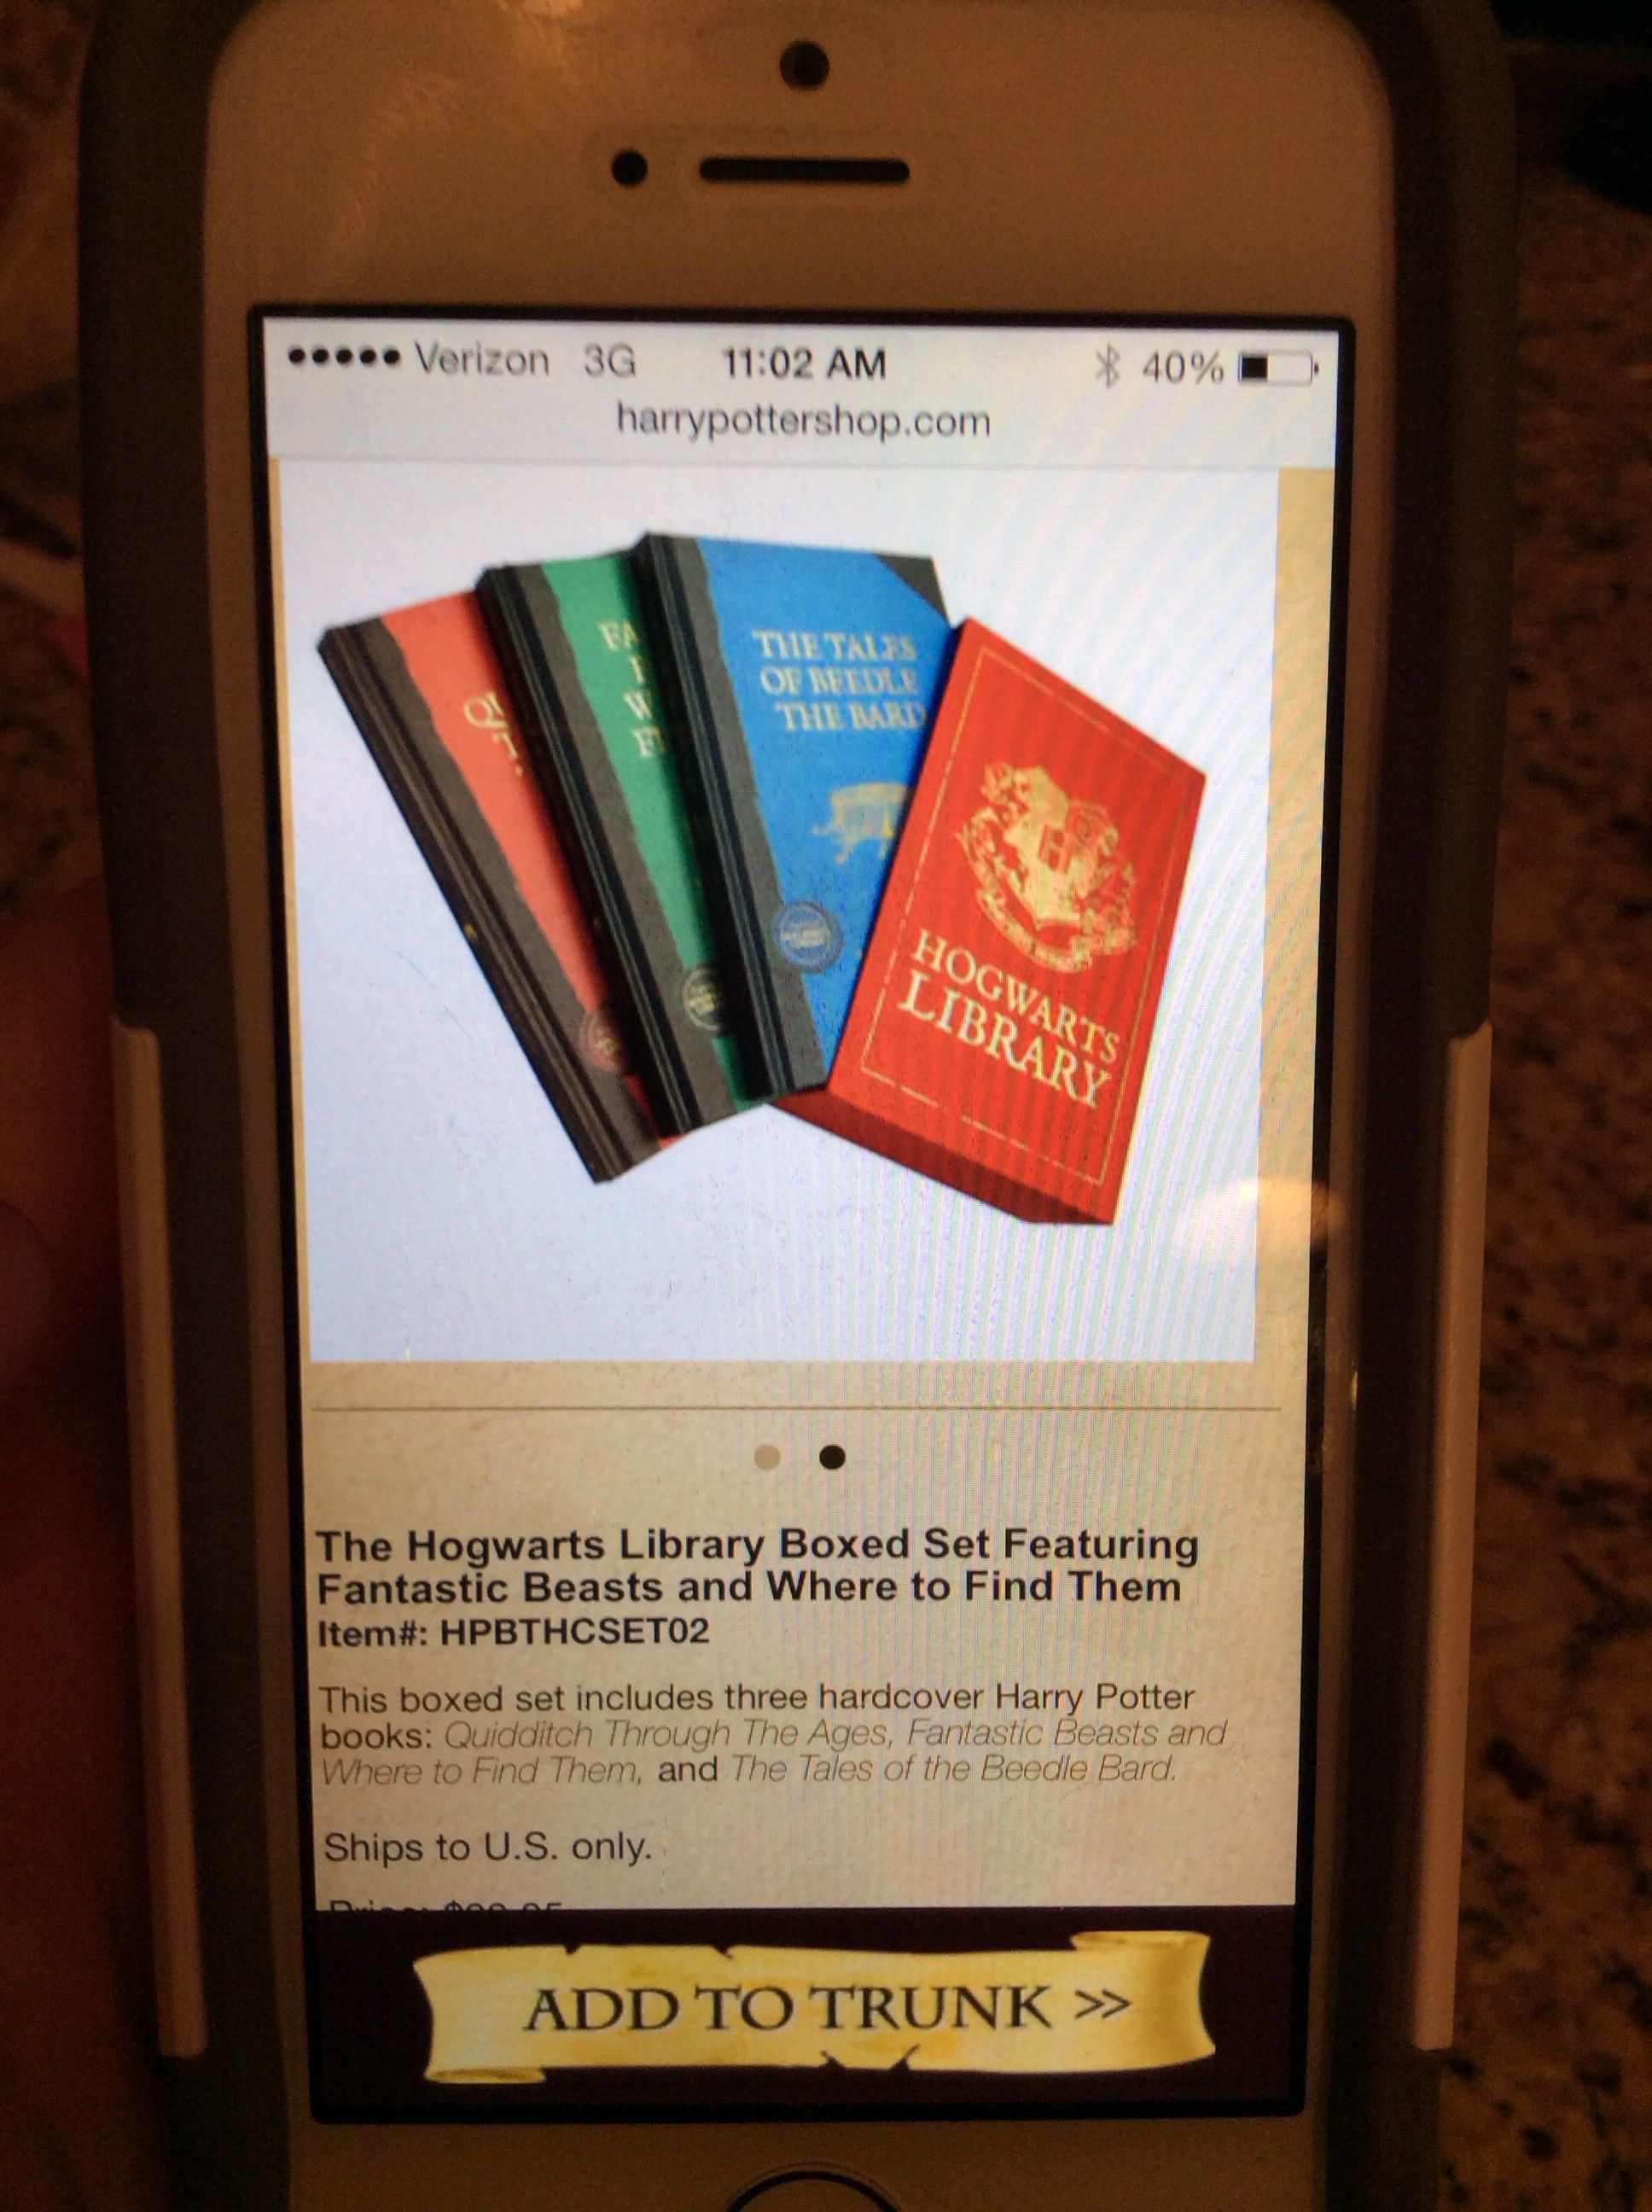 Real harry potter books from hogwarts!!you can get it at pottershop.com and it's $29.95